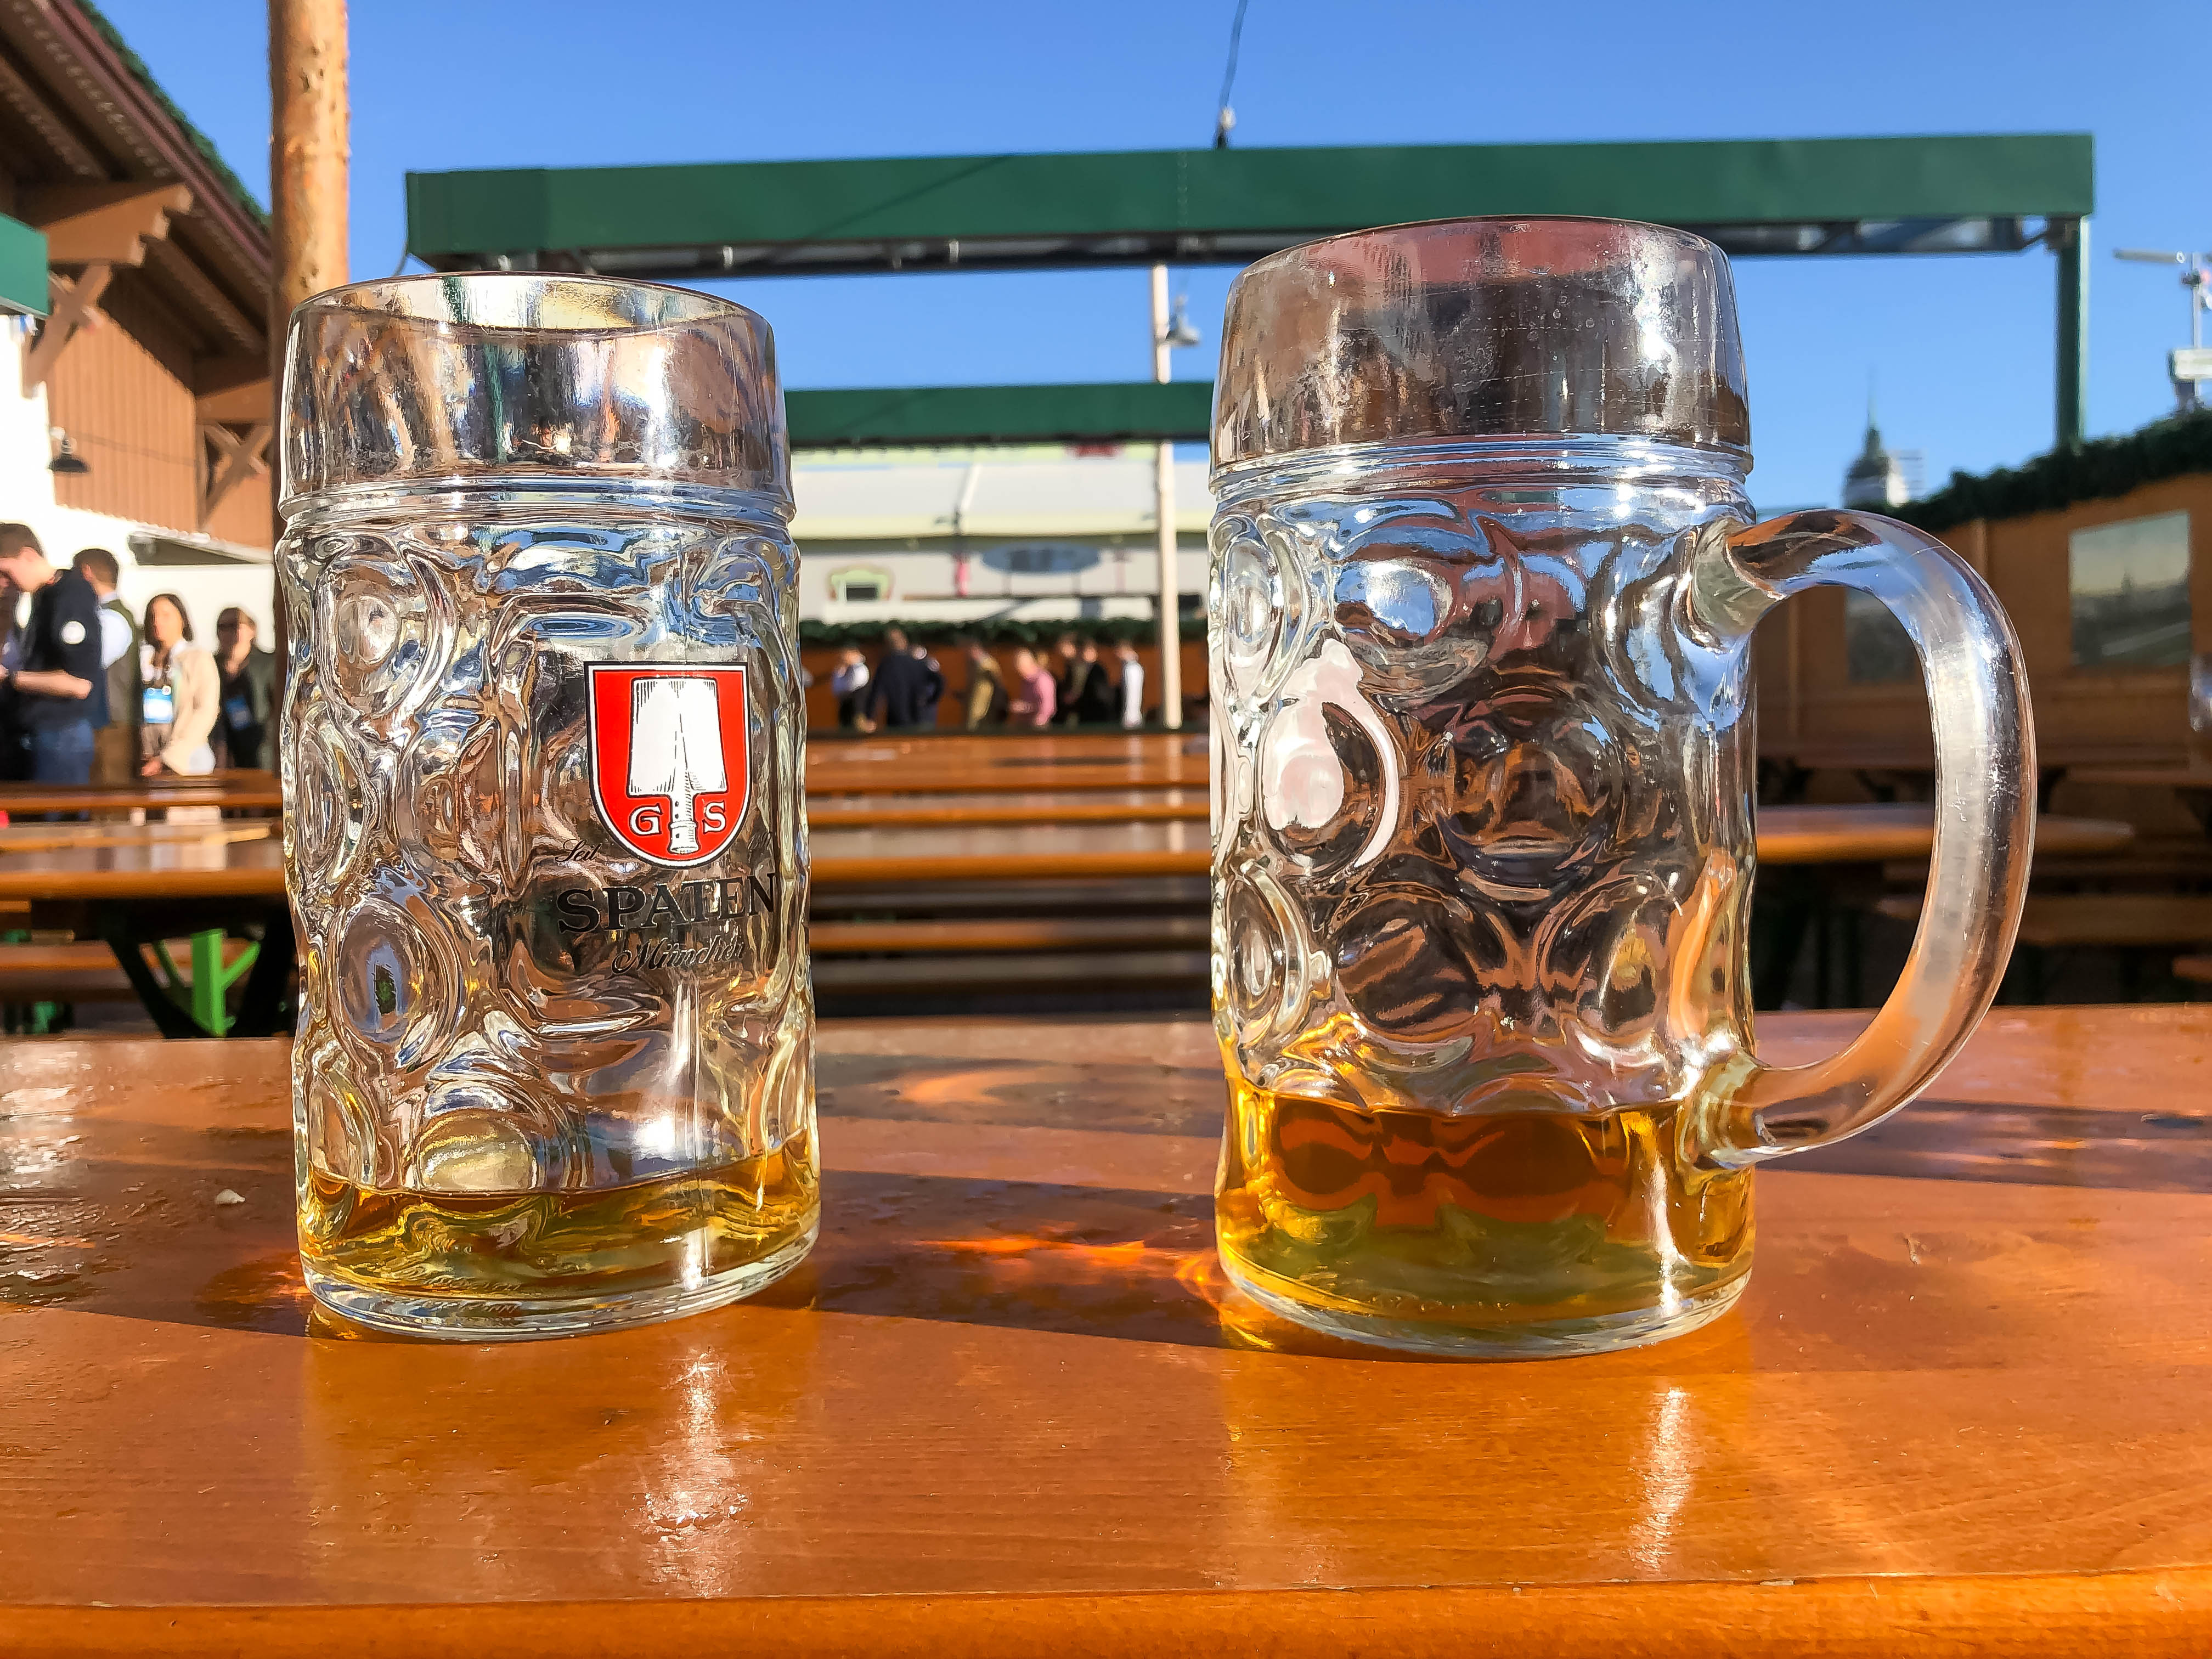 At Least 250 People Lost Their Drivers' Licenses at Oktoberfest Because of Drunken Scooter Riding